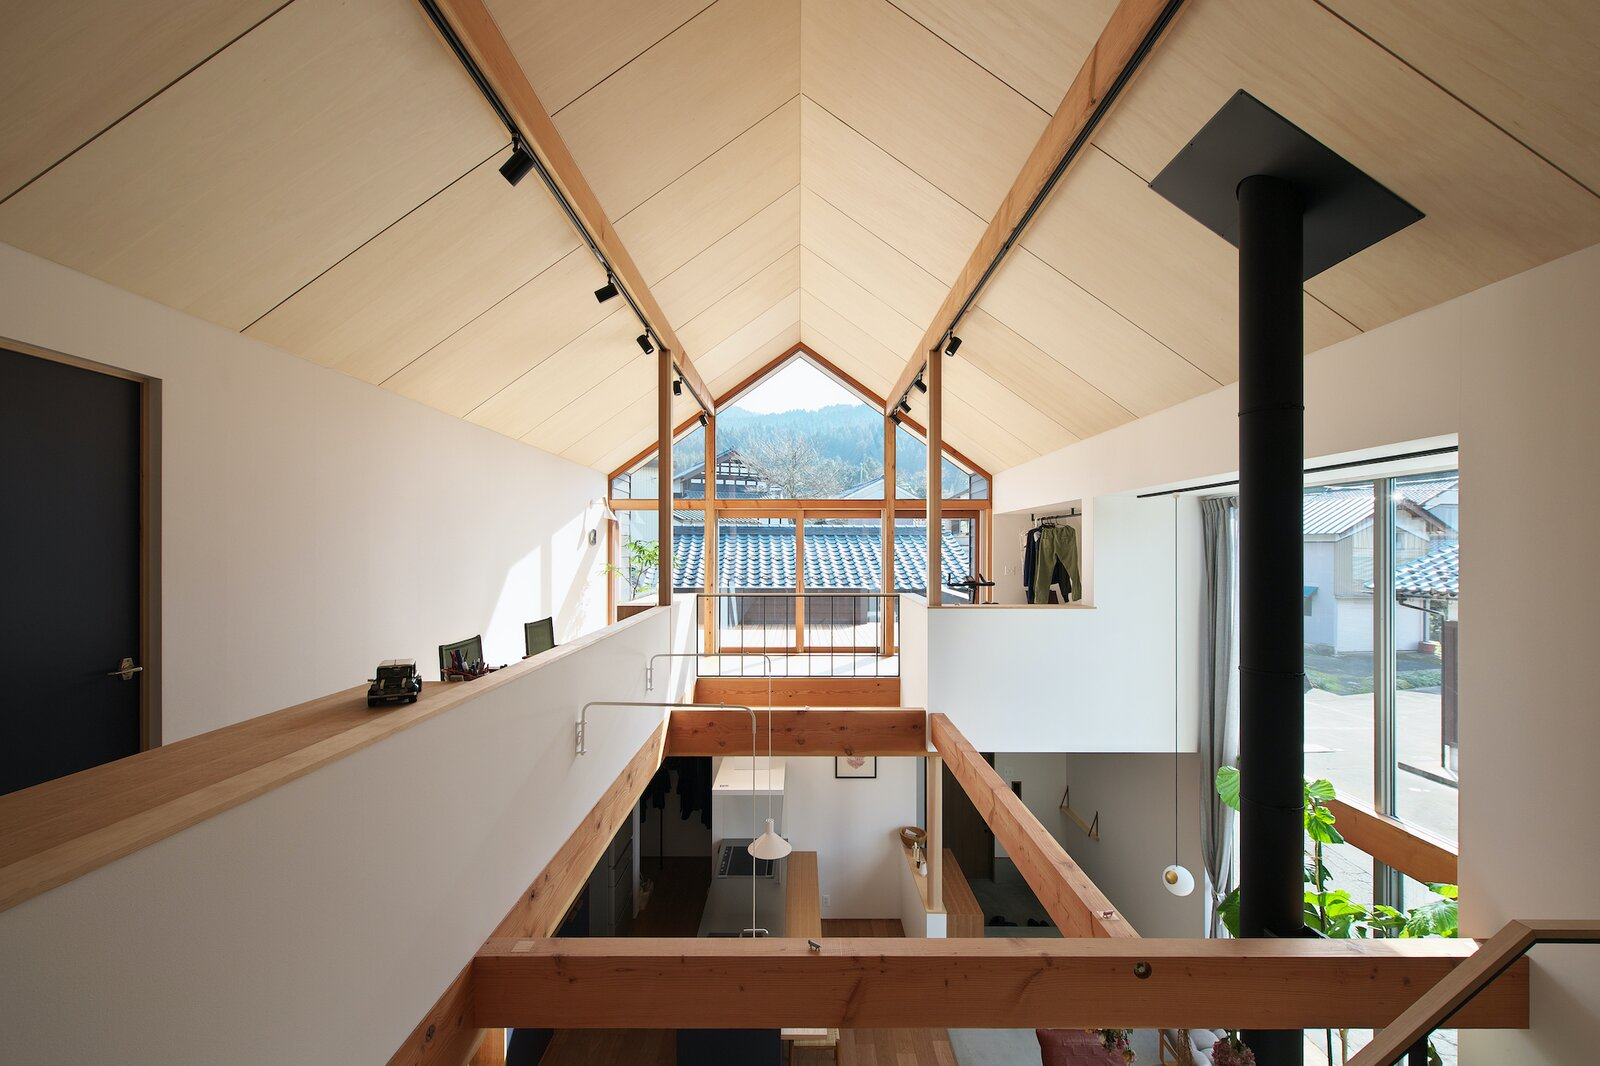 This Luminous Family Home in Japan Has a Cozy, Timber-Clad Interior